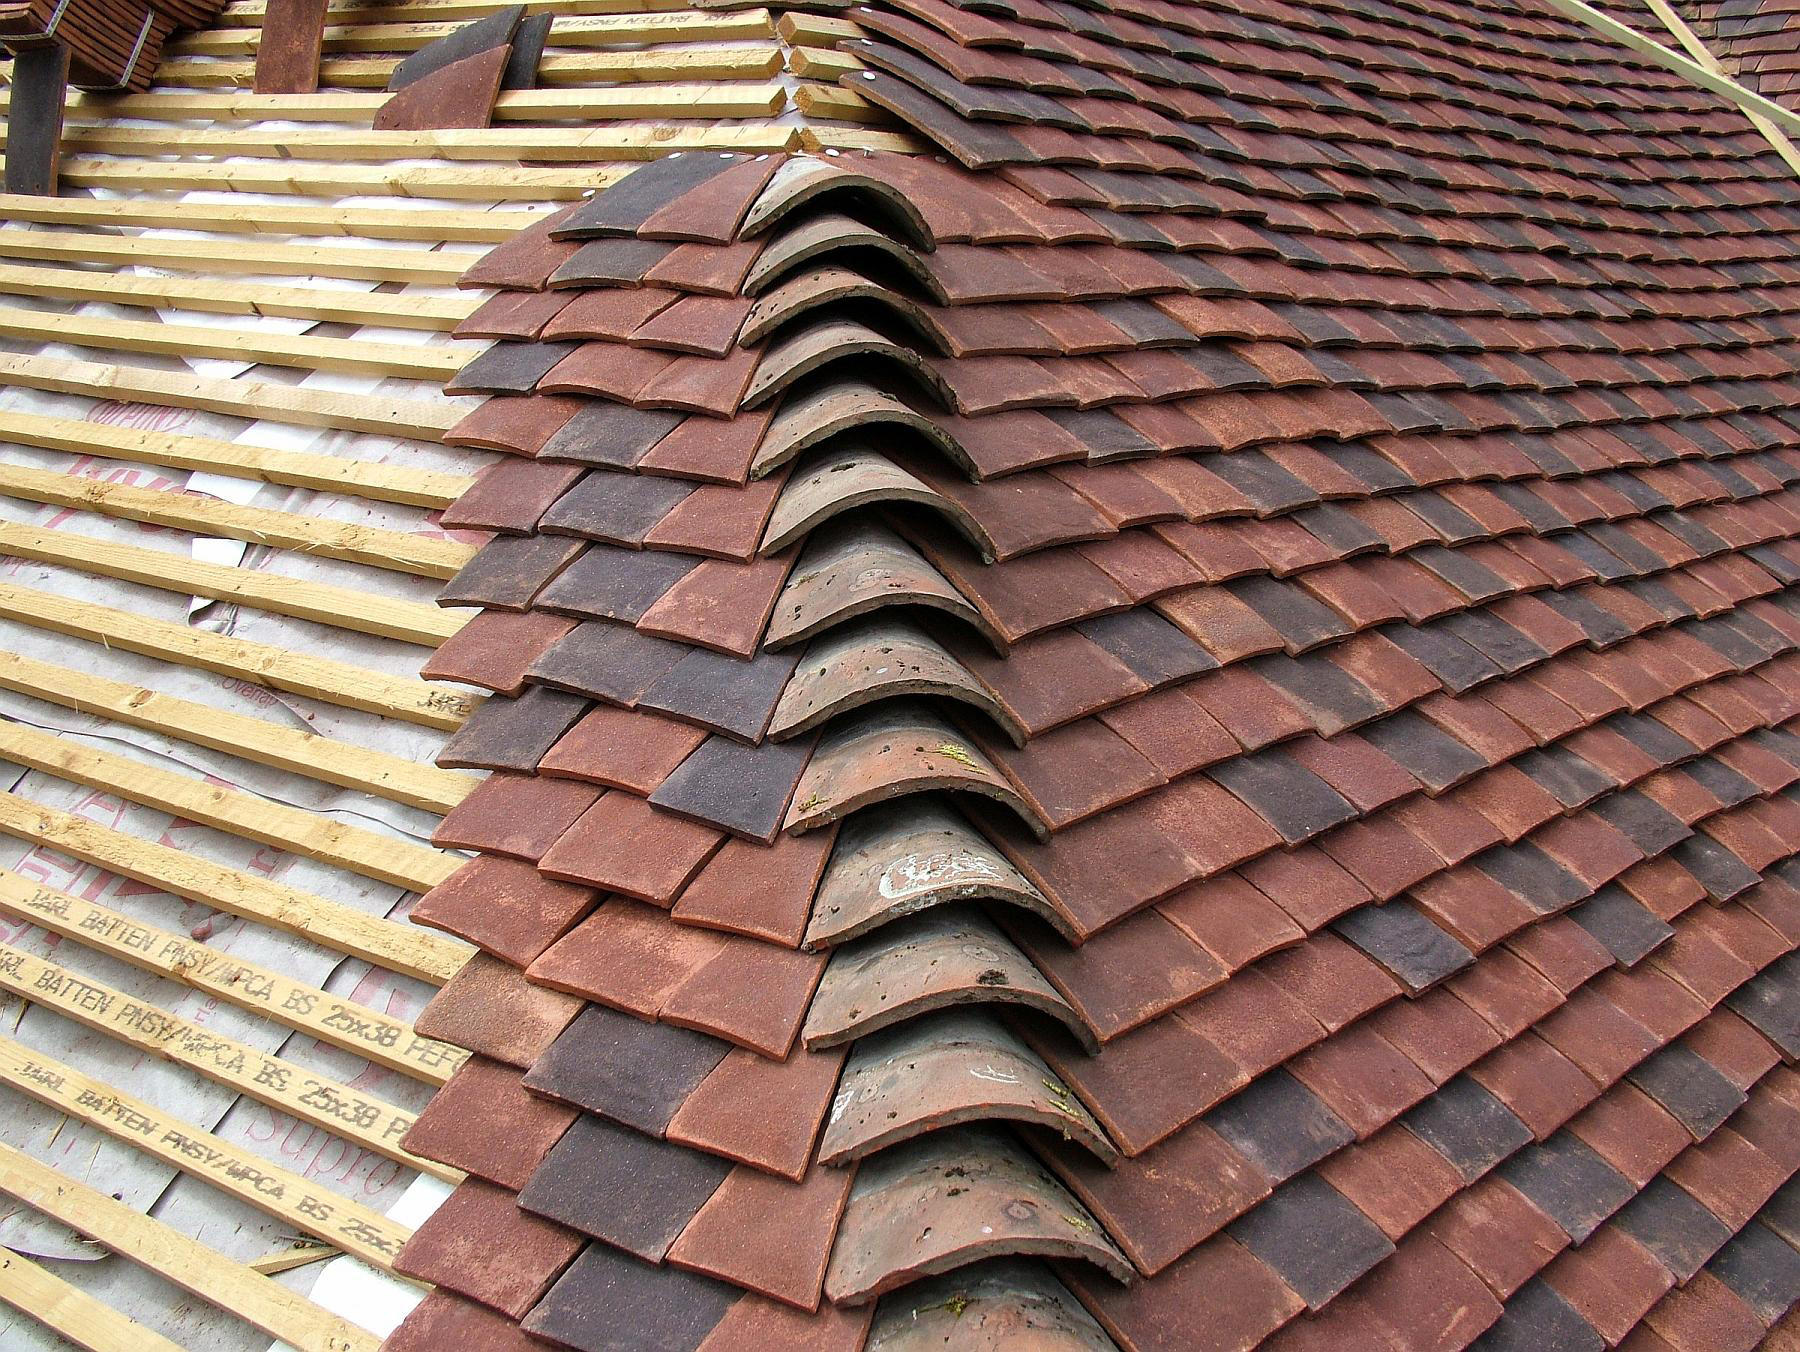 Tudor Roof Tile returns to full production